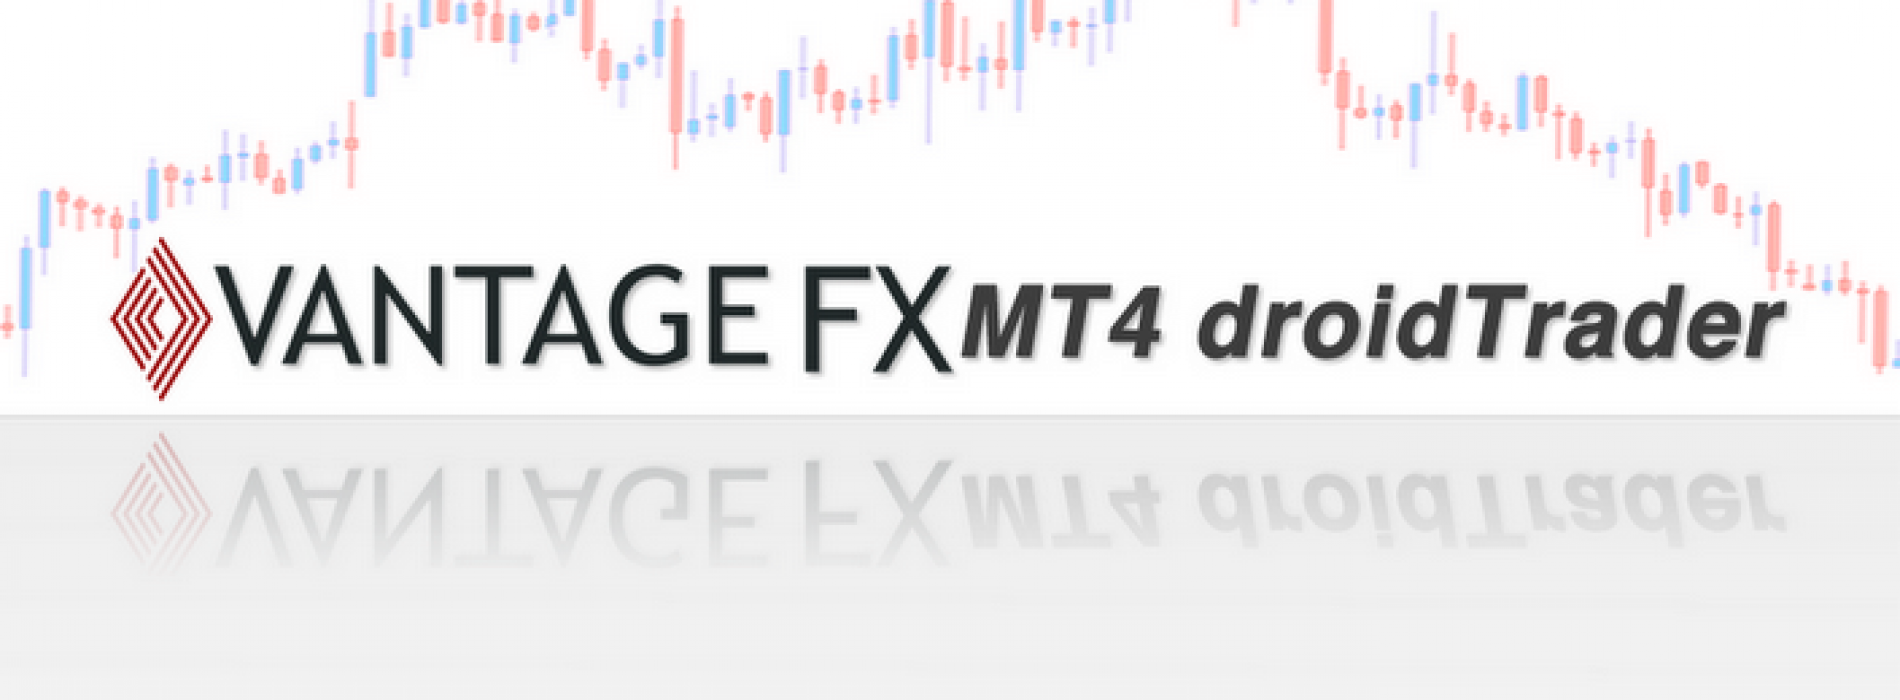 Vantage FX droidTrader Now Available for UK Investors